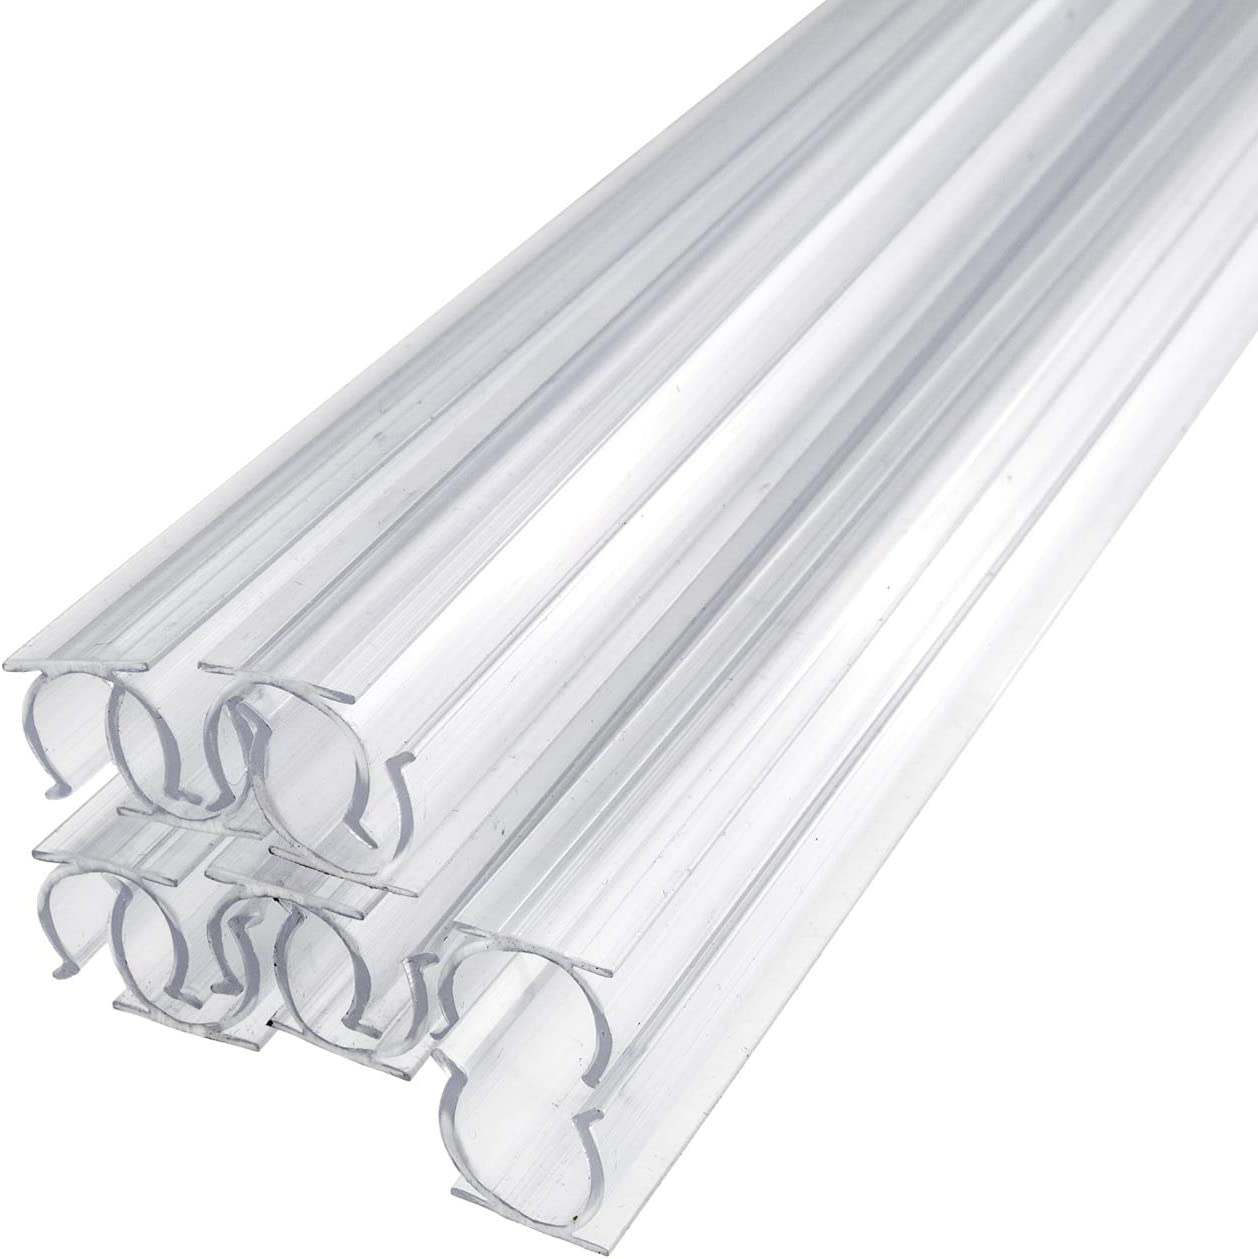 Brilliant Brand Lighting 24 Inch x 1/2 Inch Rope Light Mounting Track - Clear PVC Channel (10 Pack) - 12/120 Volt